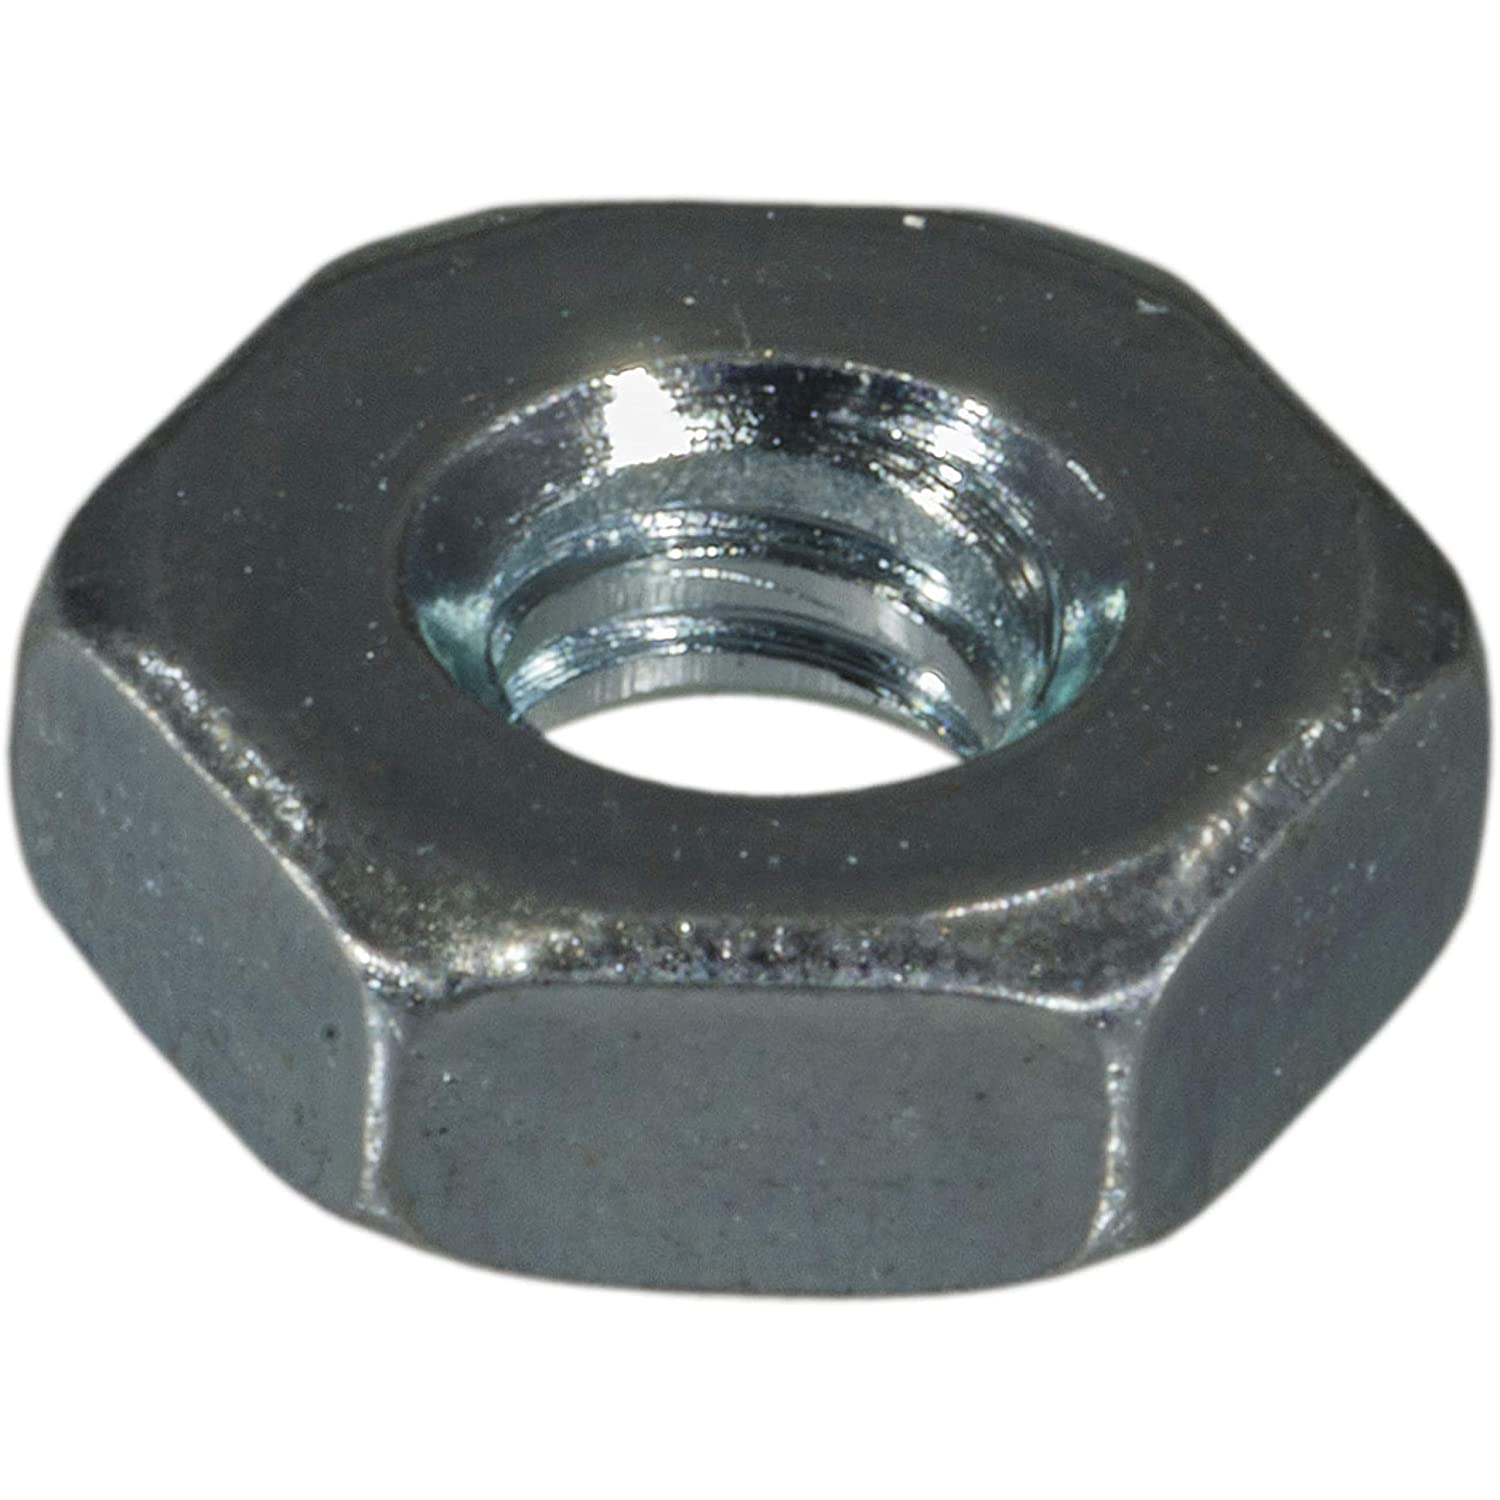 Hard-to-Find Fastener 014973283131 Finished Hex Nuts Piece-100 6-32